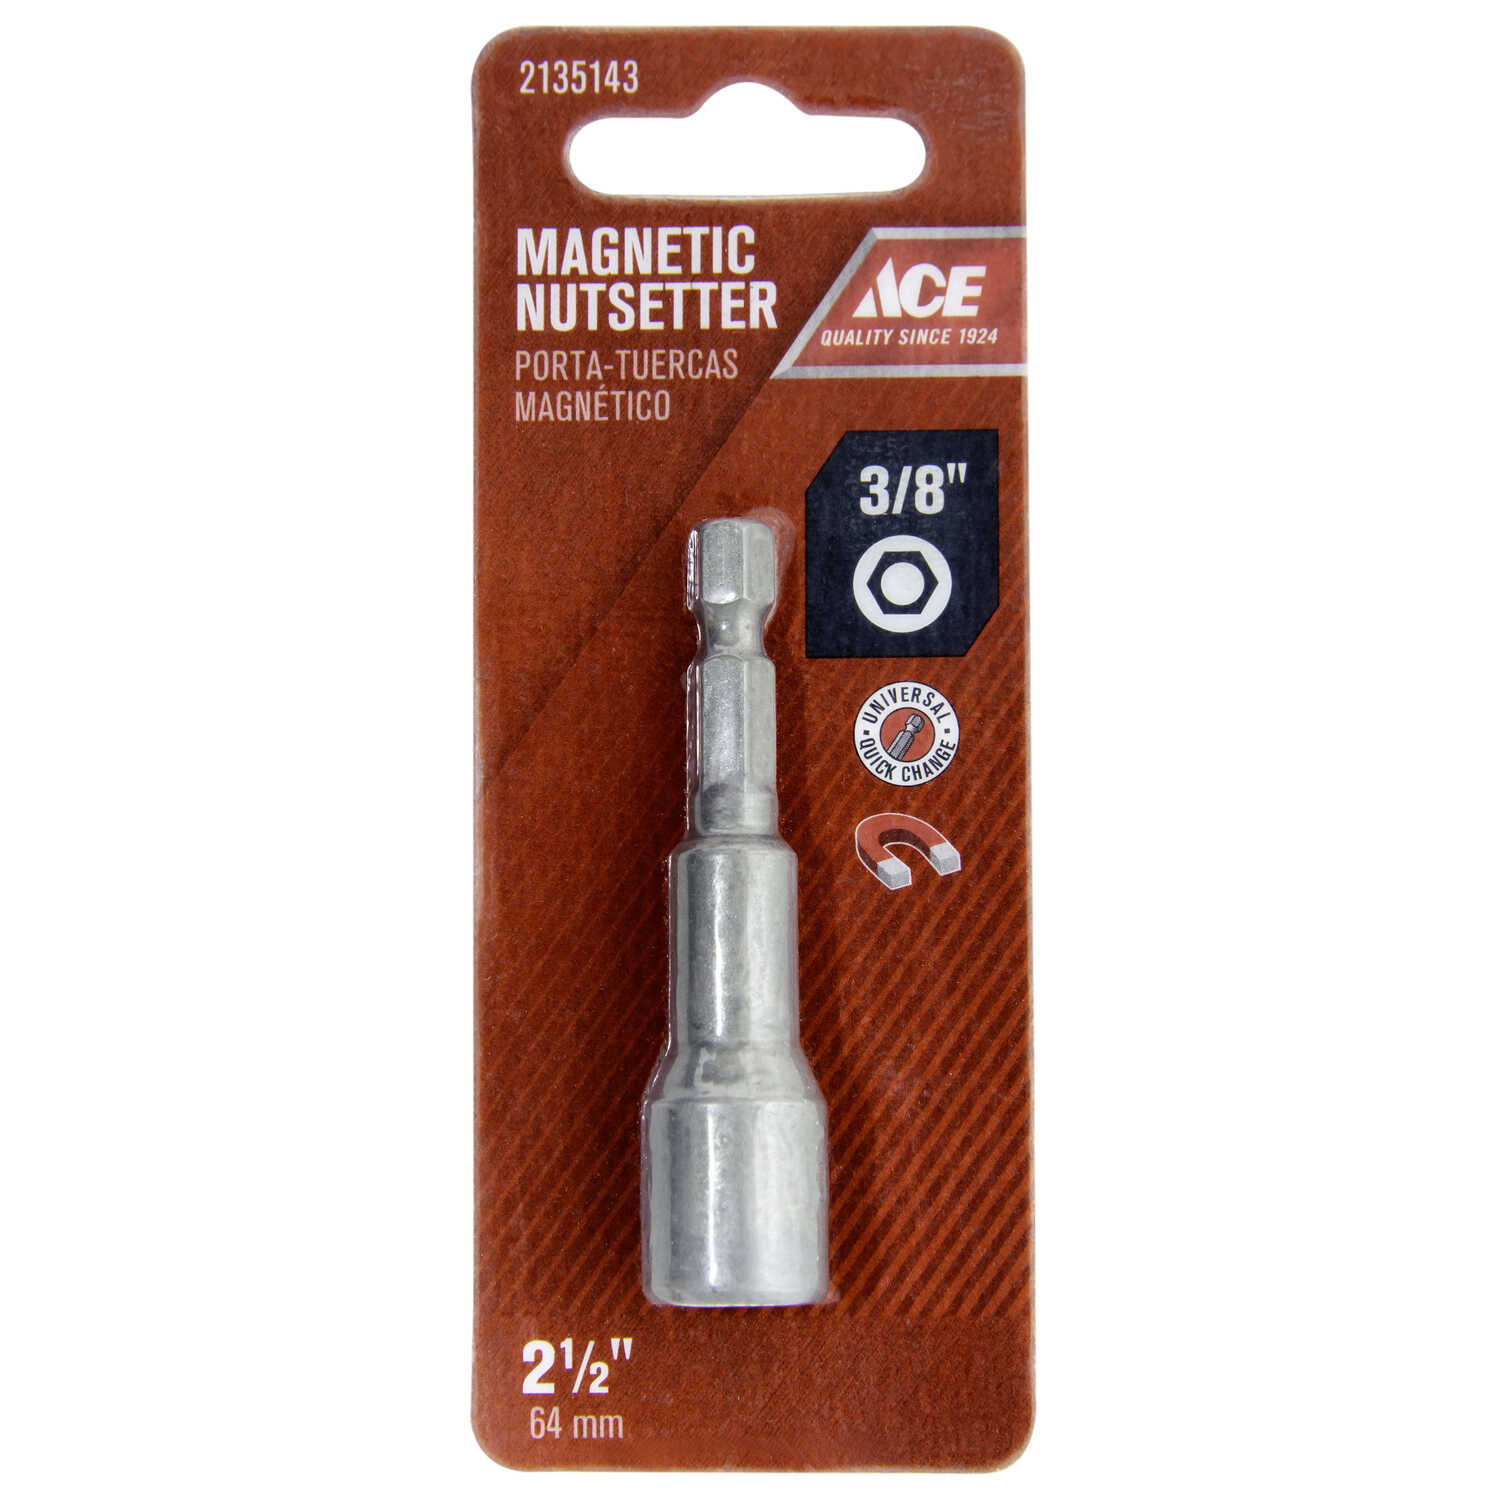 Ace  3/8 in. drive  x 2-1/2 in. L Chrome Vanadium Steel  Magnetic Nut Setter  1 pc.